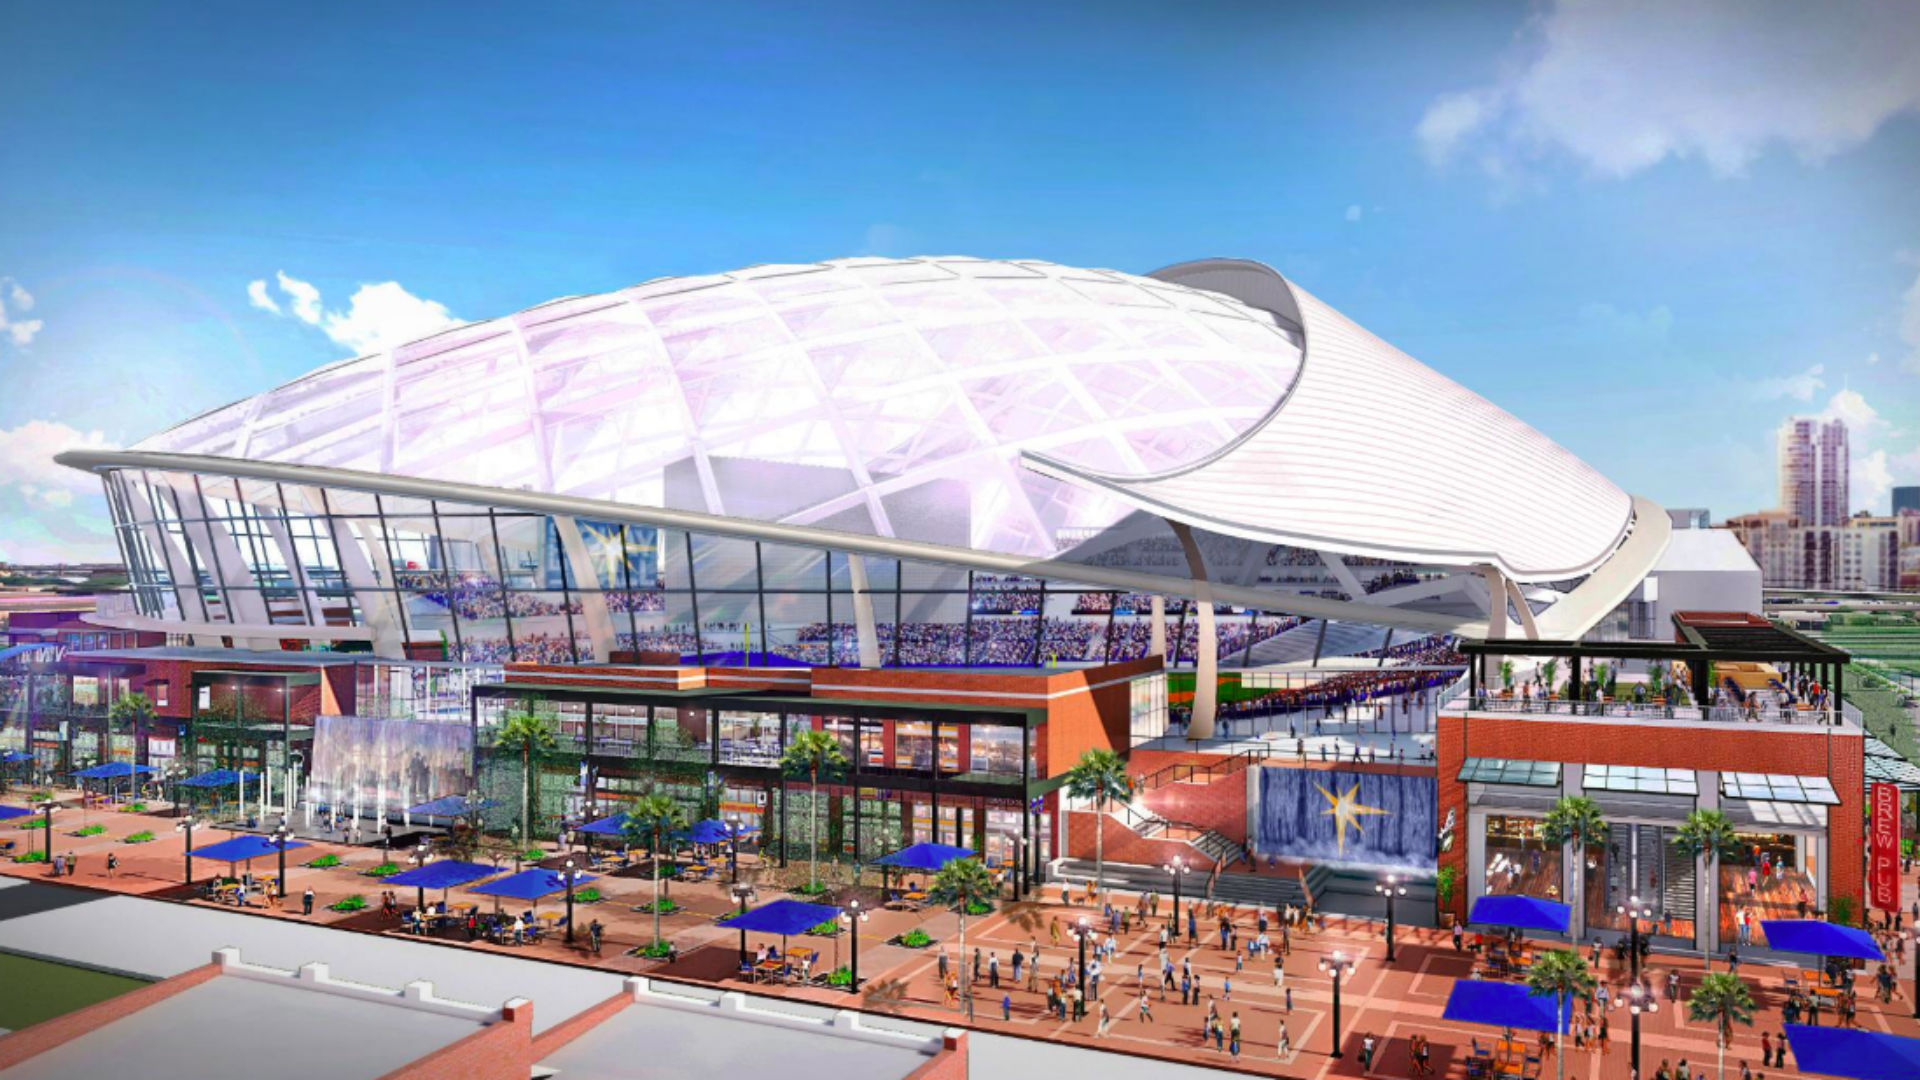 Rays unveil plans for new domed stadium in Tampa | MLB ...